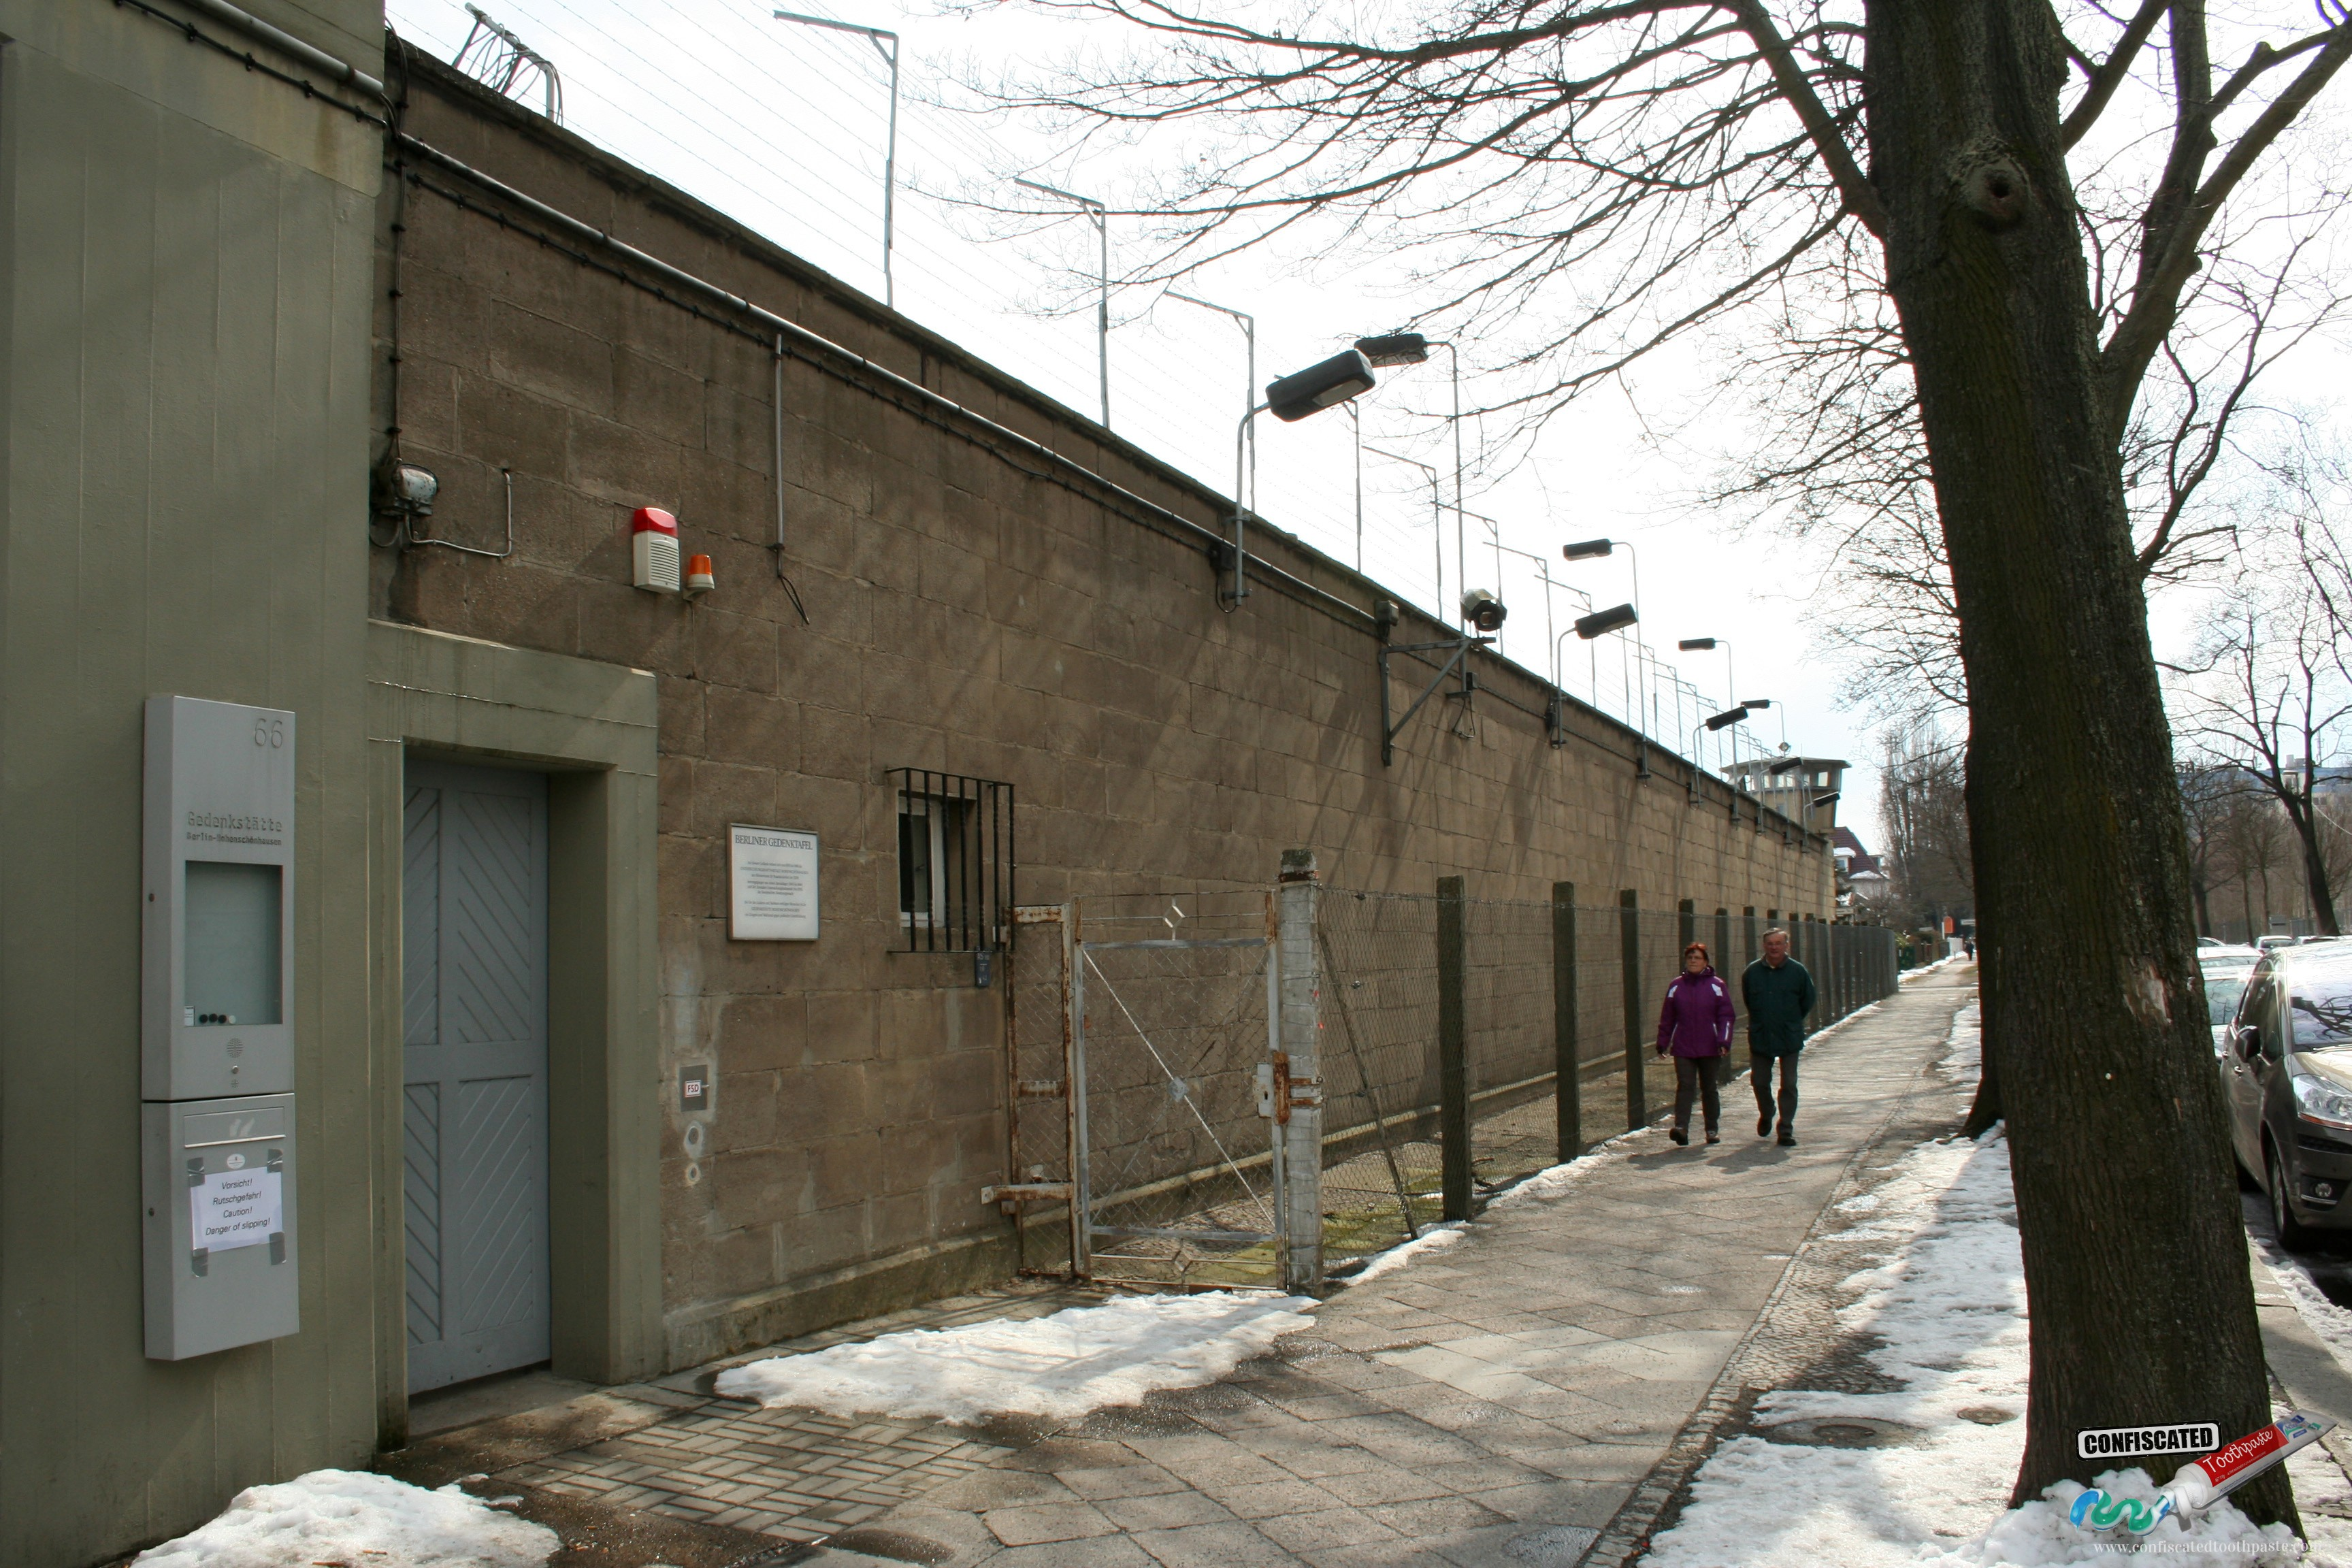 The Secret Stasi Prison in the Former East Berlin